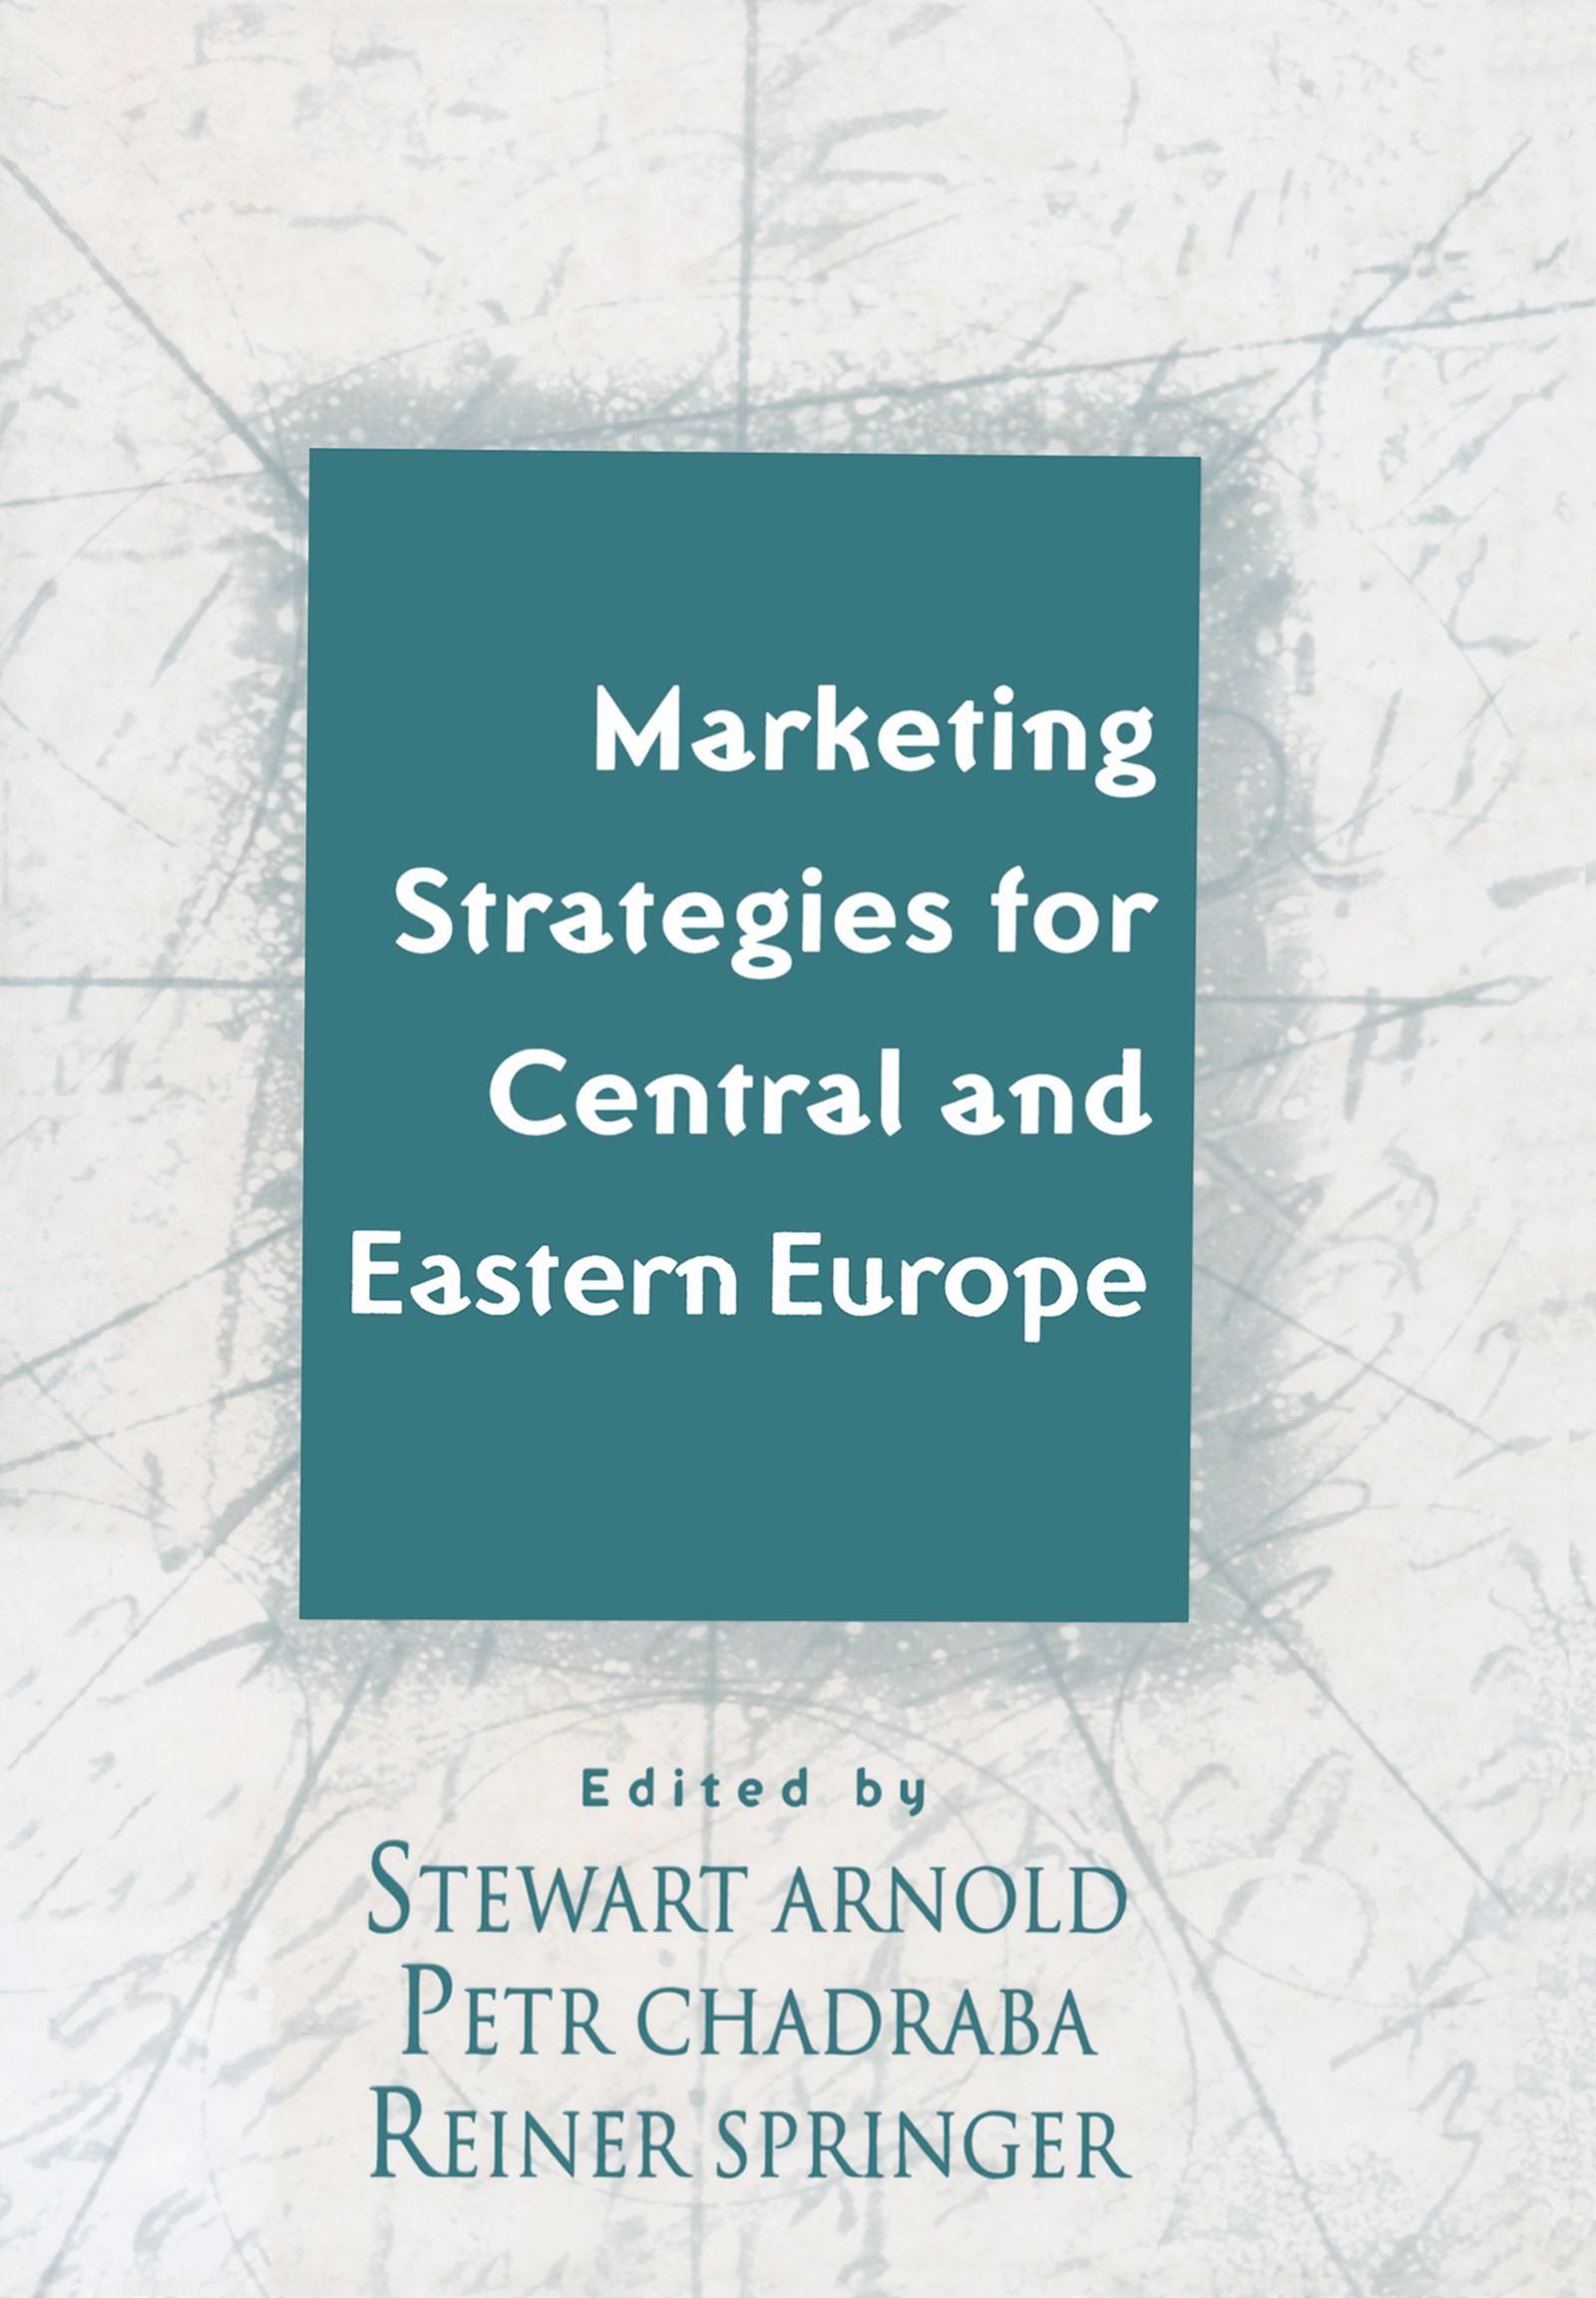 Marketing Craft Businesses: The Slovenian Case